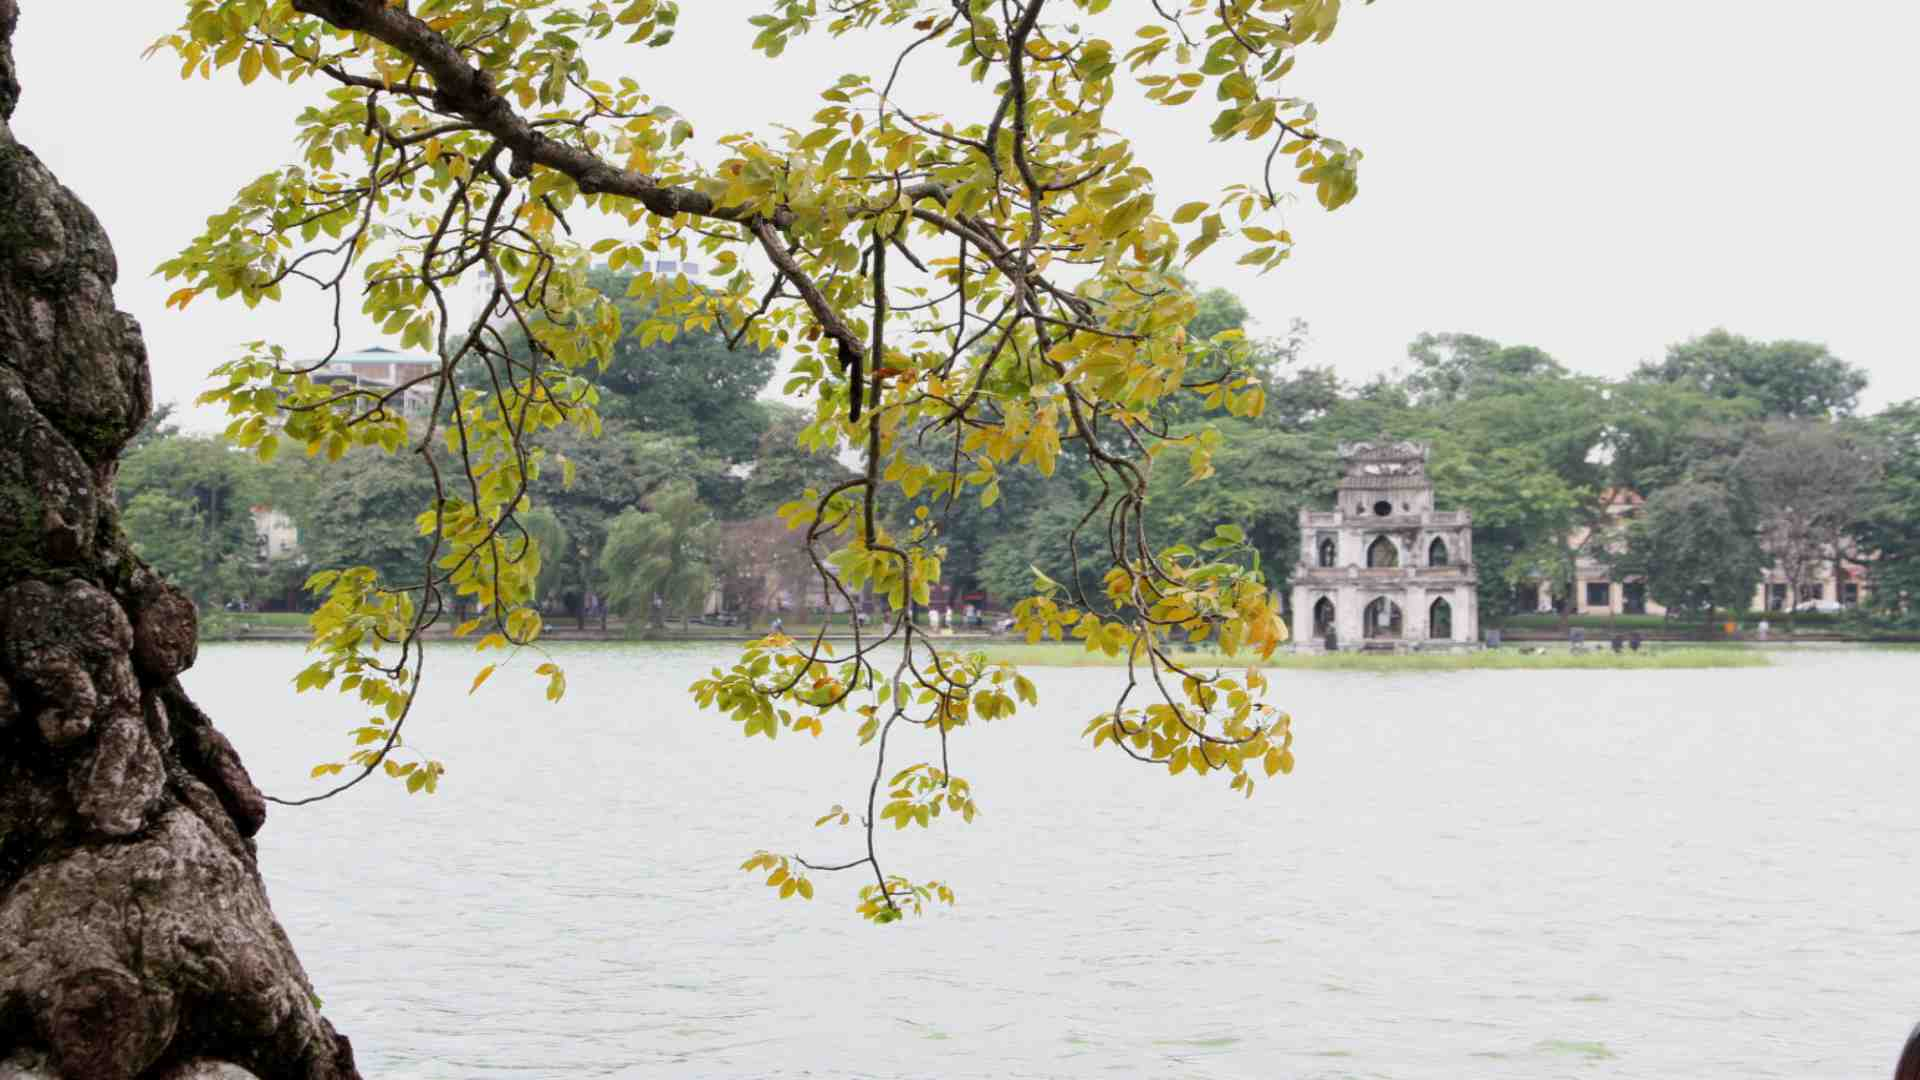 HANOI - HALONG - SAPA - NINHBINH - HANOI 7 DAYS 6 NIGHTS - BUDGET TOUR